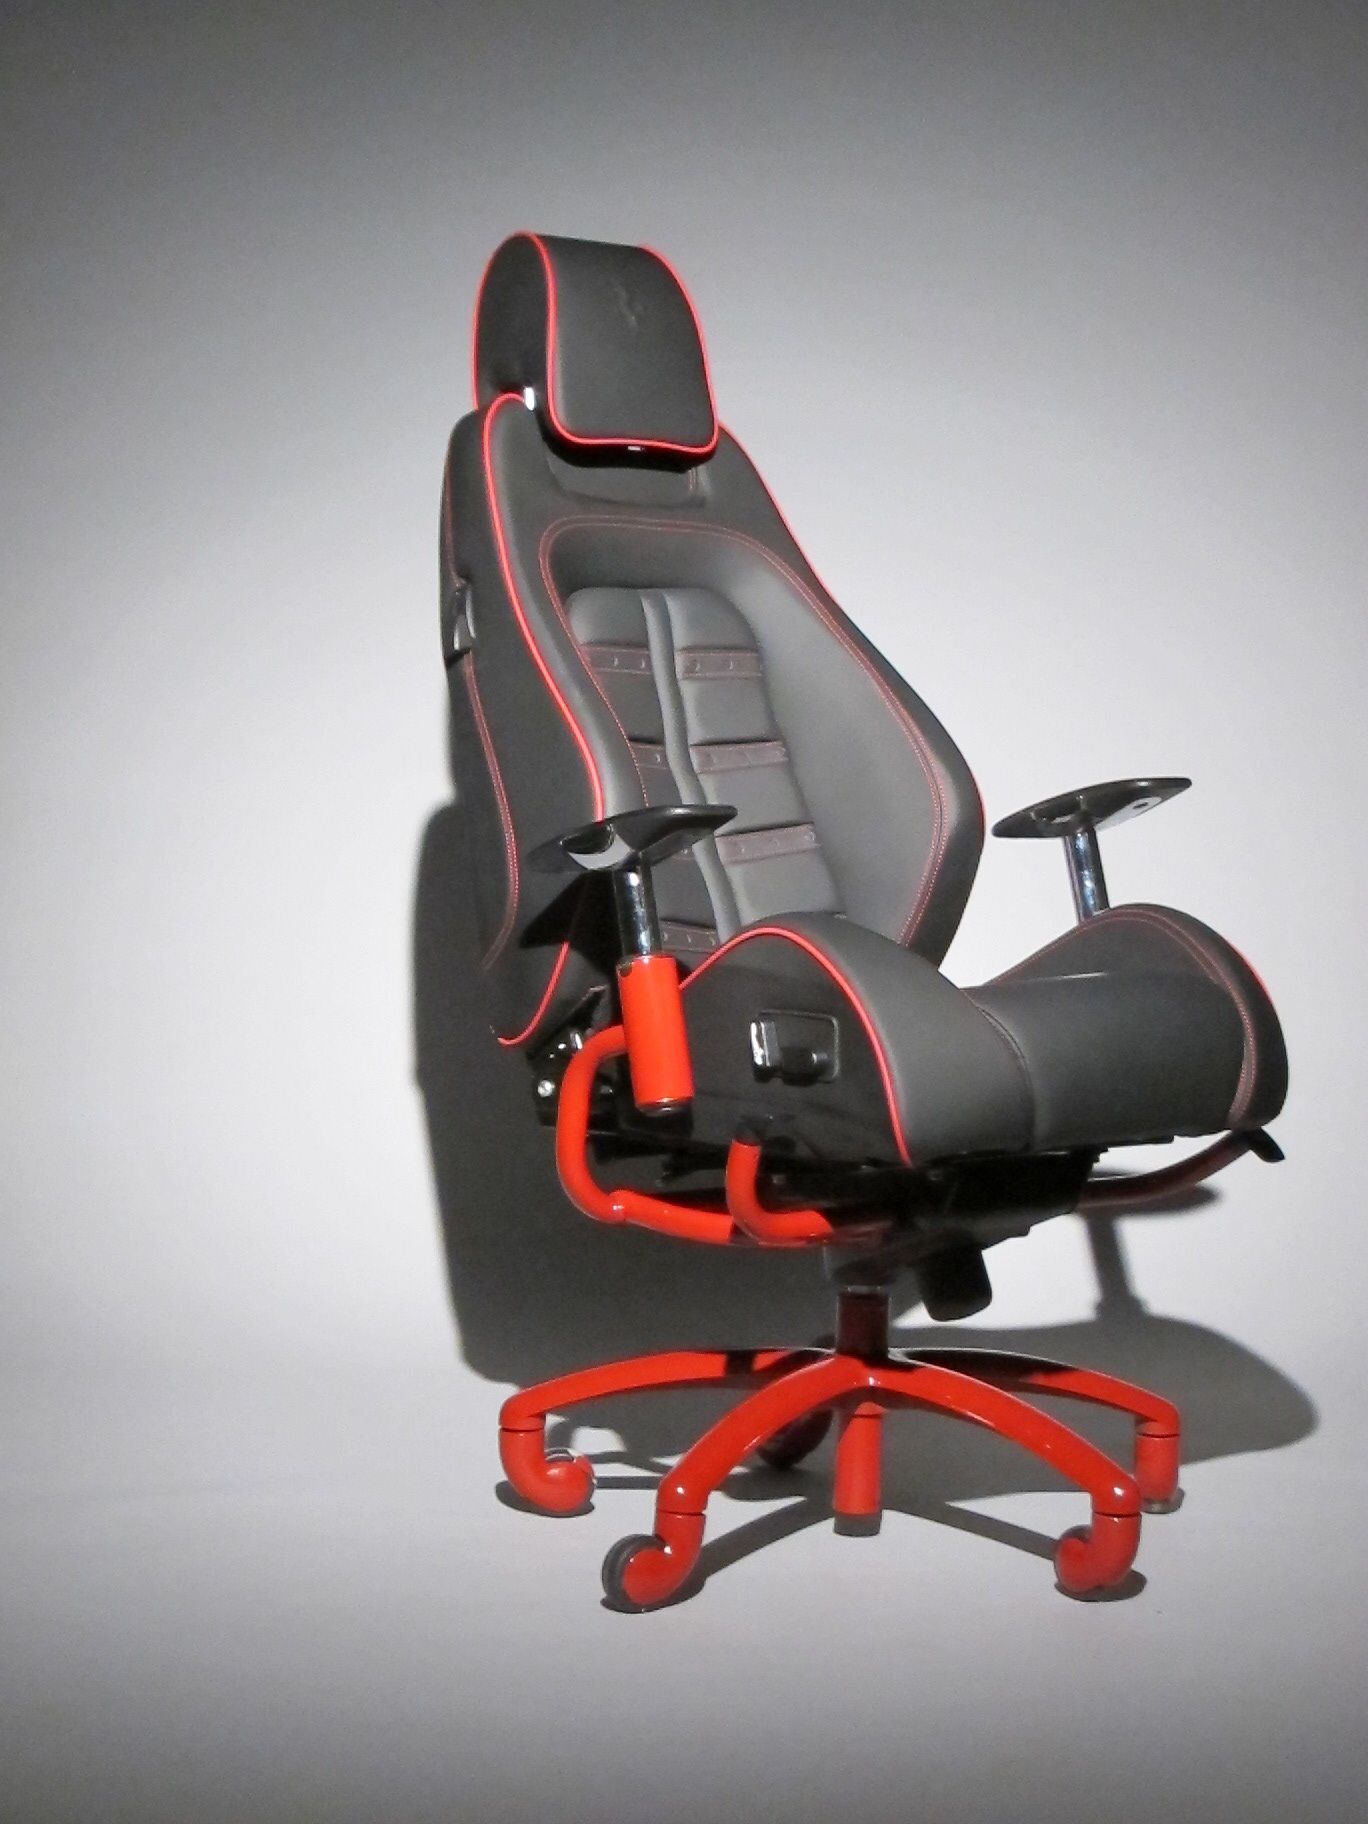 Most comfortable office chair - Authentic Ferrari Office Chair From Racechairs Com Made Using The Actual Seat From A Most Comfortable